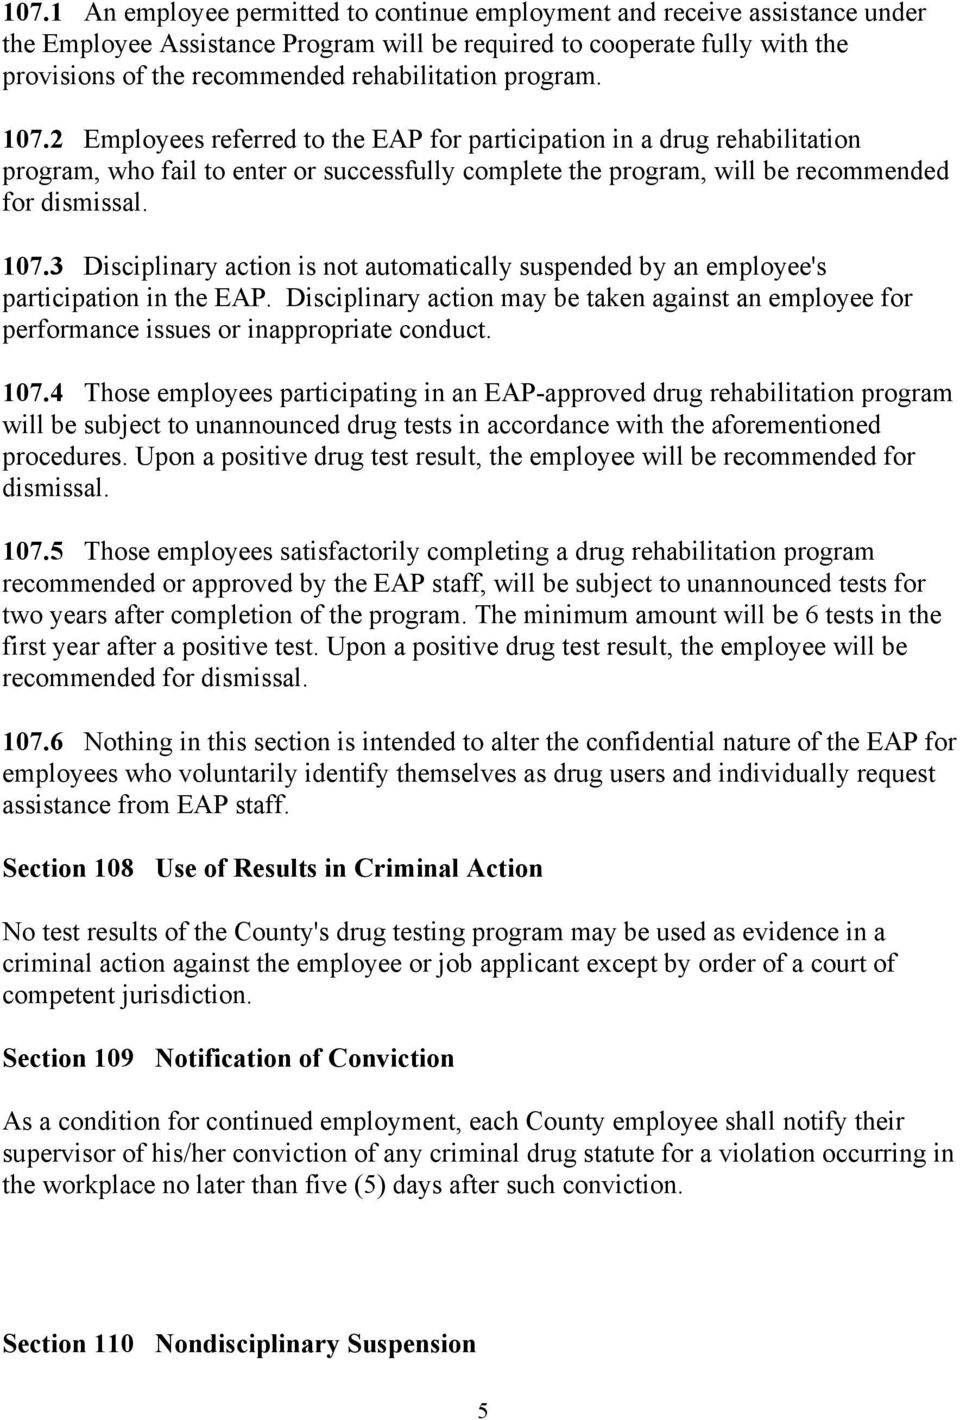 2 Employees referred to the EAP for participation in a drug rehabilitation program, who fail to enter or successfully complete the program, will be recommended for dismissal. 107.